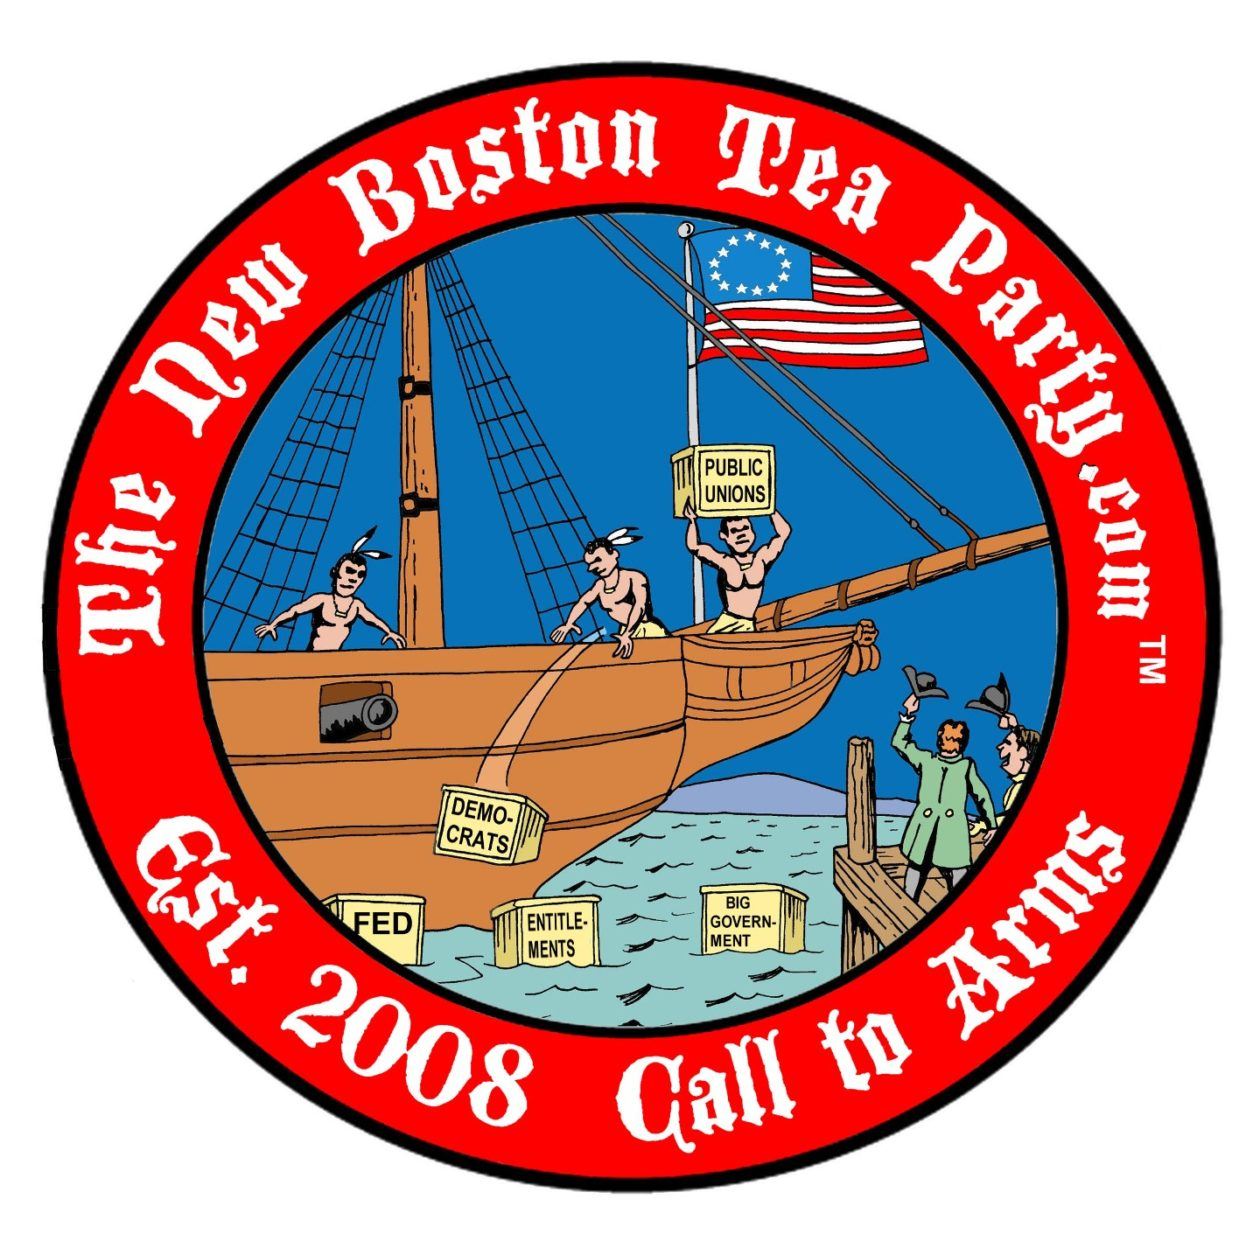 The New Boston Tea Party ©